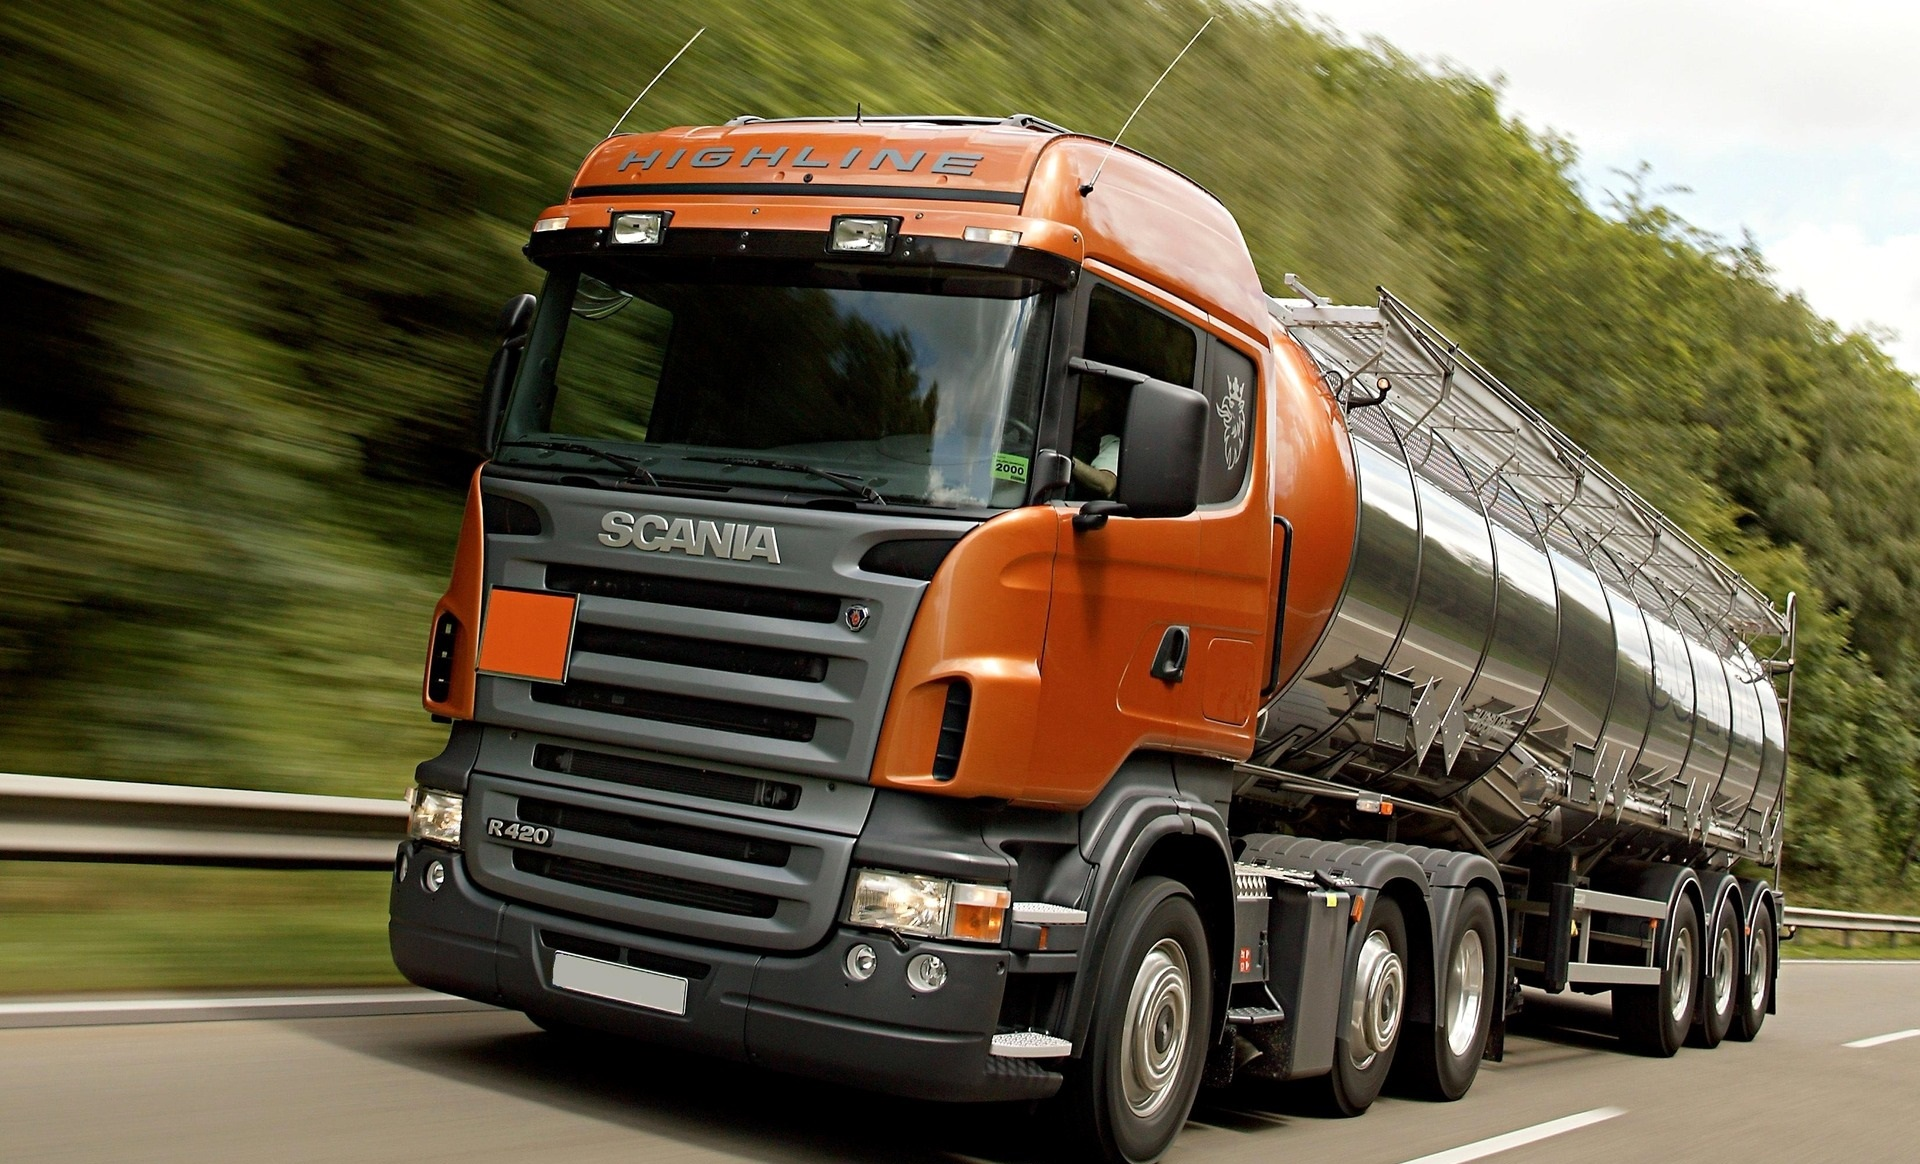 Scania-Trucks-for-sale-in-South-Africa